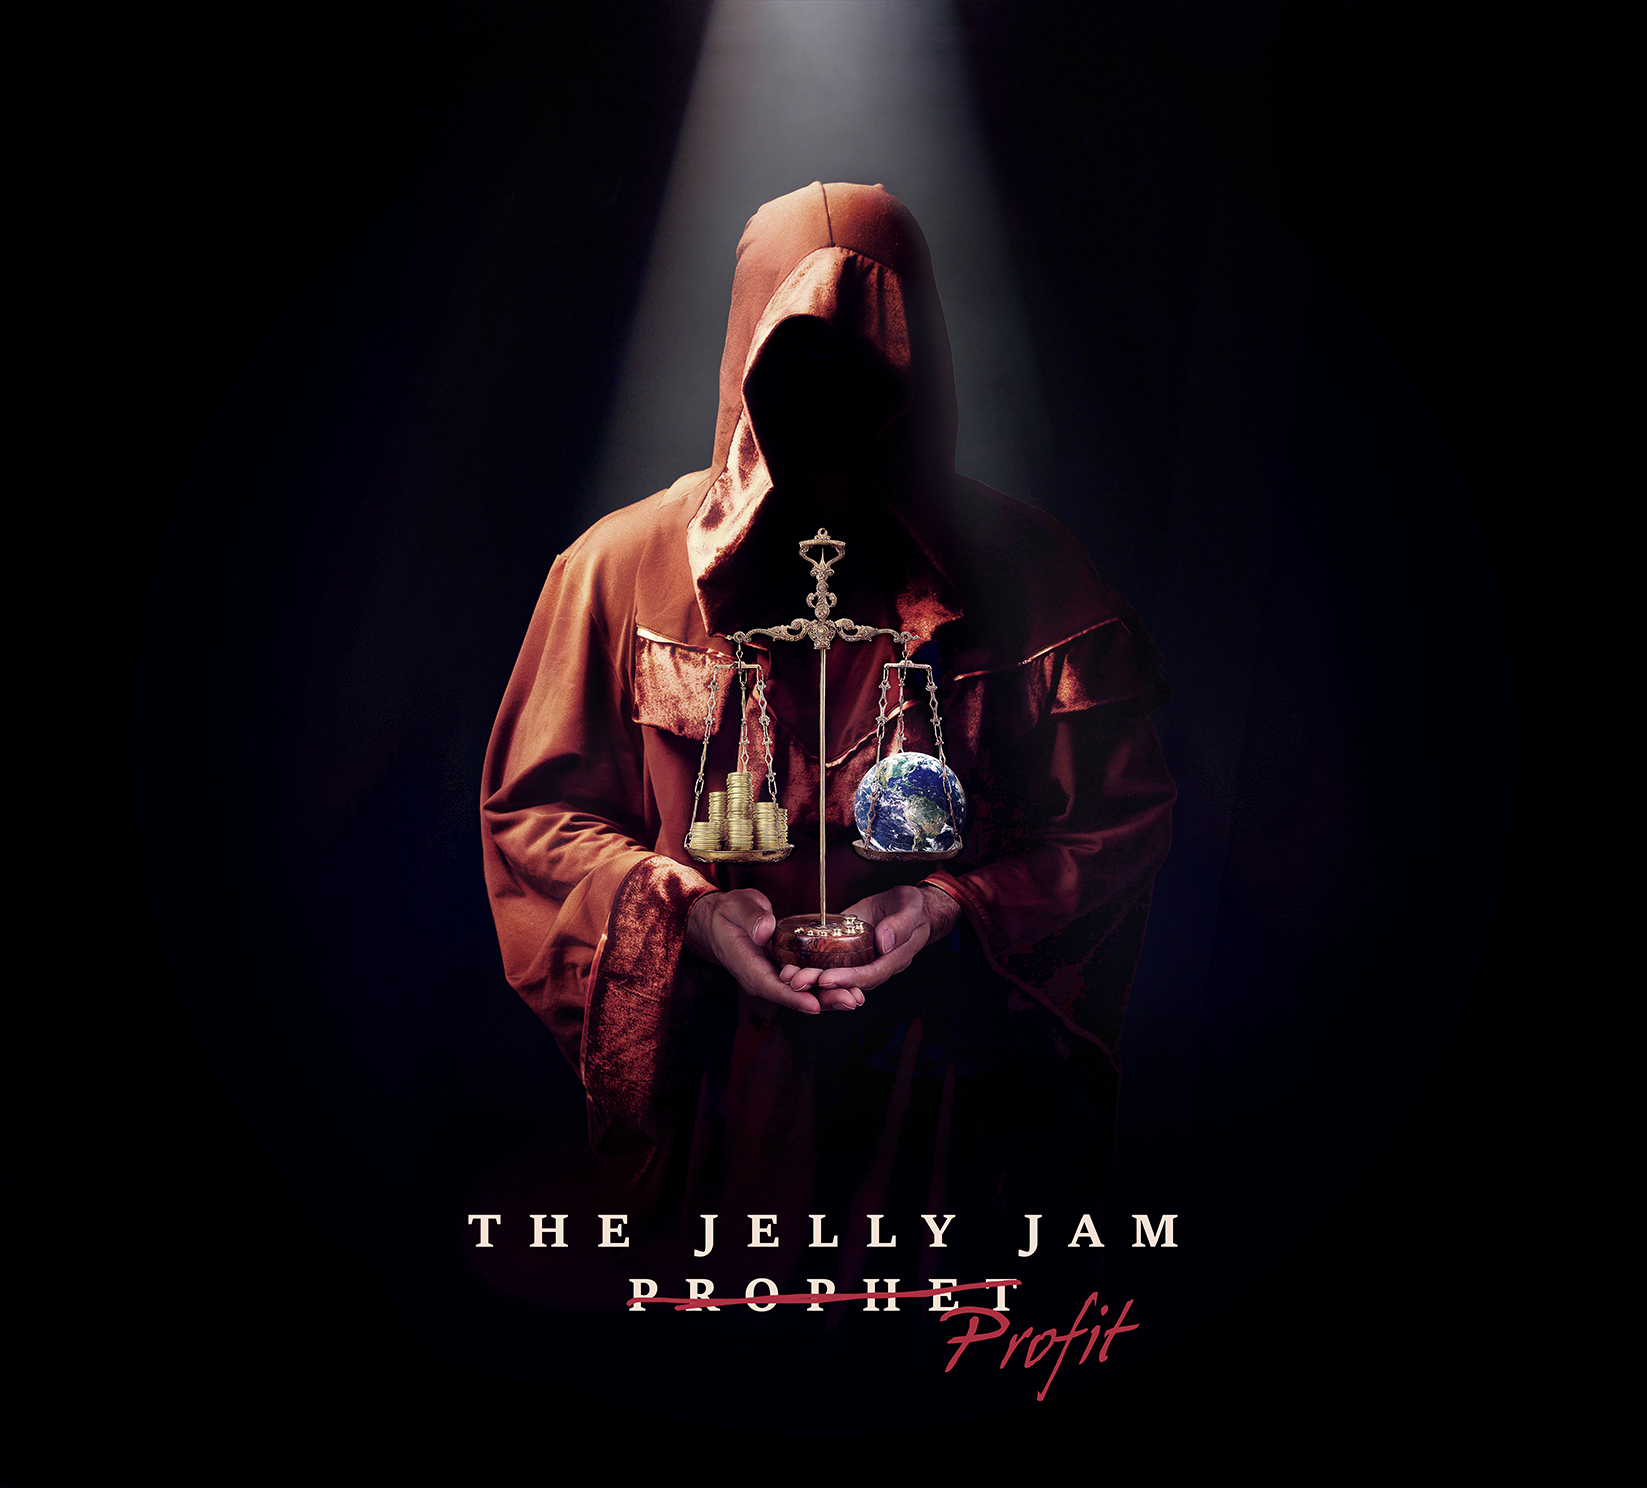 THE JELLY JAM  NEW ALBUM: PROFIT  RELEASED ON: 27 MAY 2016